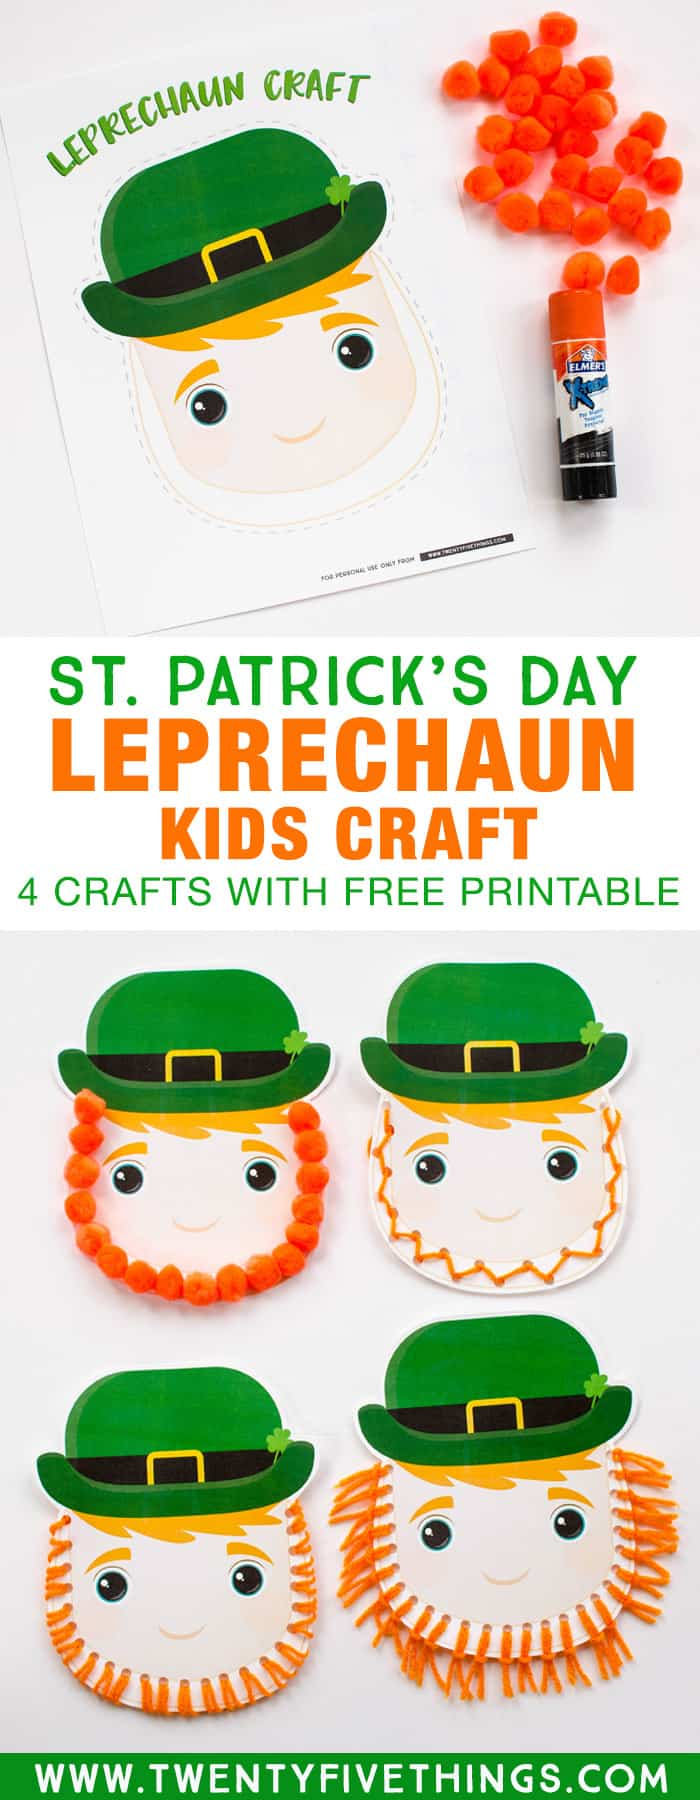 Learn how to make this easy Leprechaun kids craft four different ways. Use the free printable to make this kids craft for St. Patrick's Day! #StPatricksDay #FreePrintable #KidsCraft